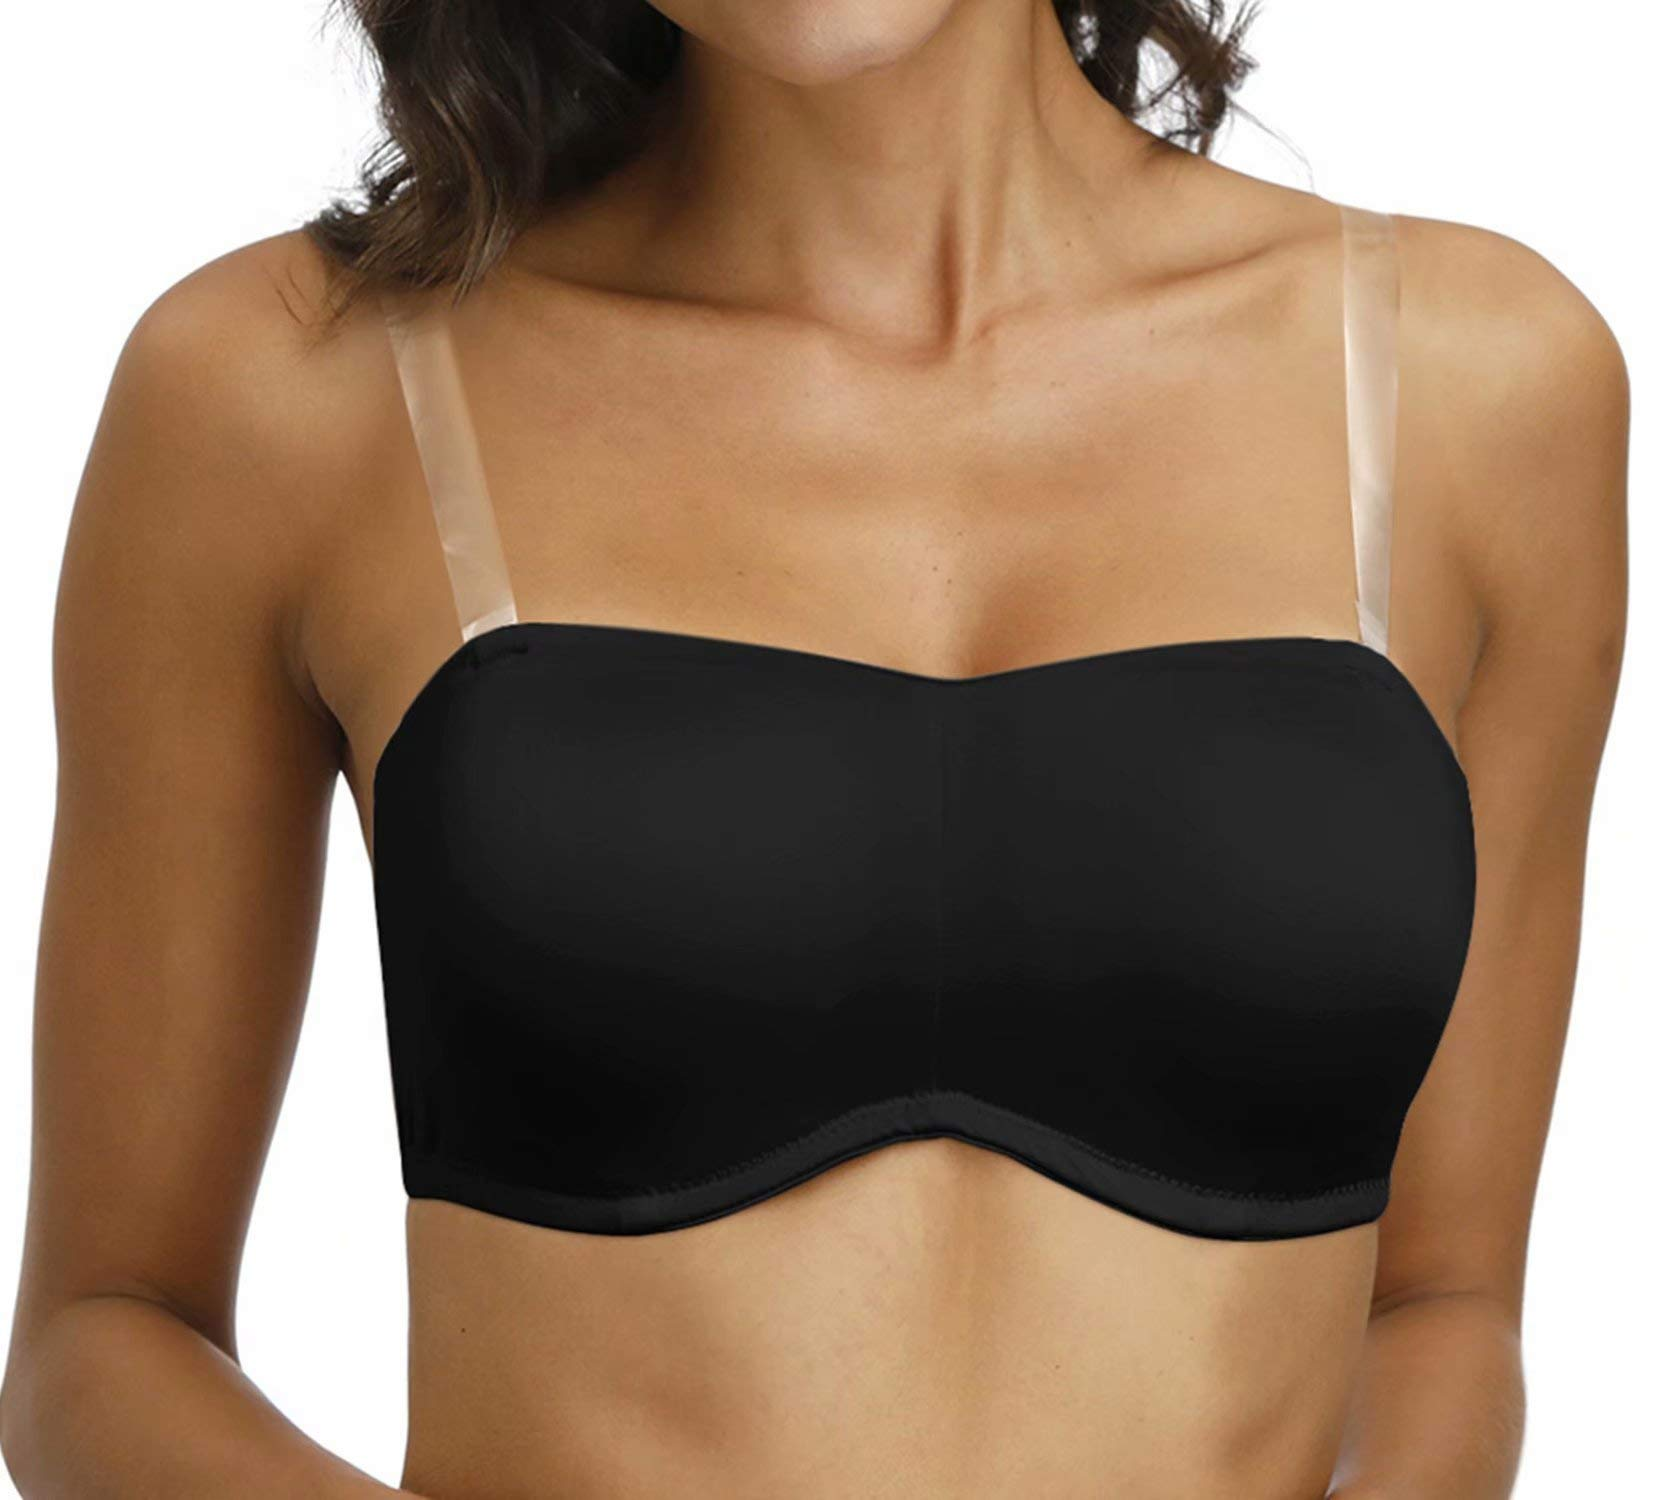 Vgplay Women's Strapless Minimizer Bra with Clear Straps and Removable Pads Smooth Convertible Bras Plus Size